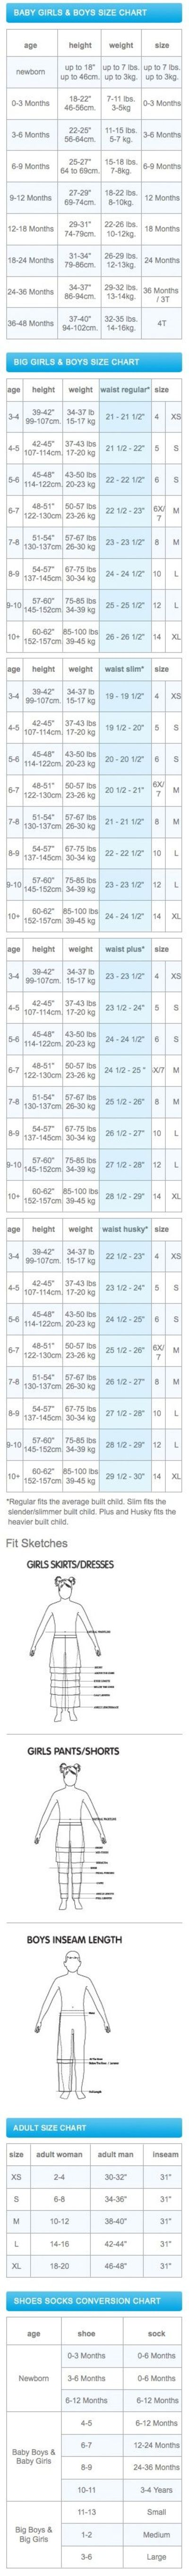 Size chart for babies